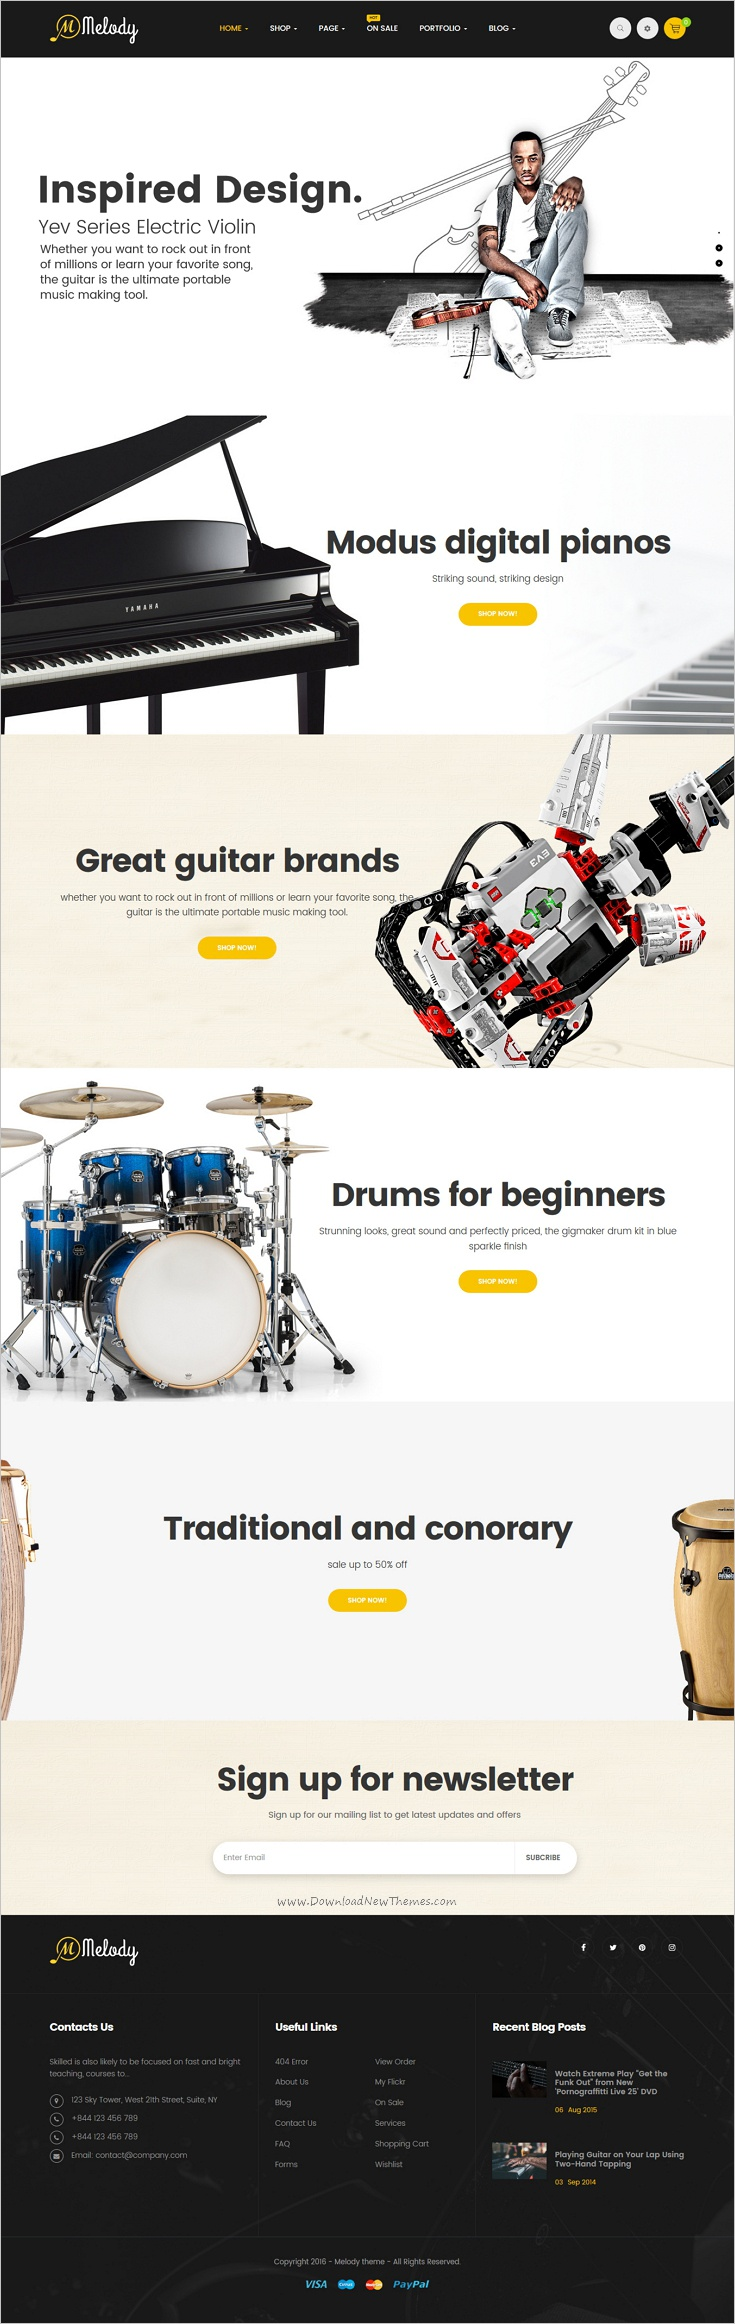 Melody is a clean and elegant design responsive #WordPress theme for #webdev musical #instruments, music, band and clubs website download now➩   https://themeforest.net/item/melody-wordpress-theme-for-musical-instruments-music-bandclub/18730814?ref=Datasata